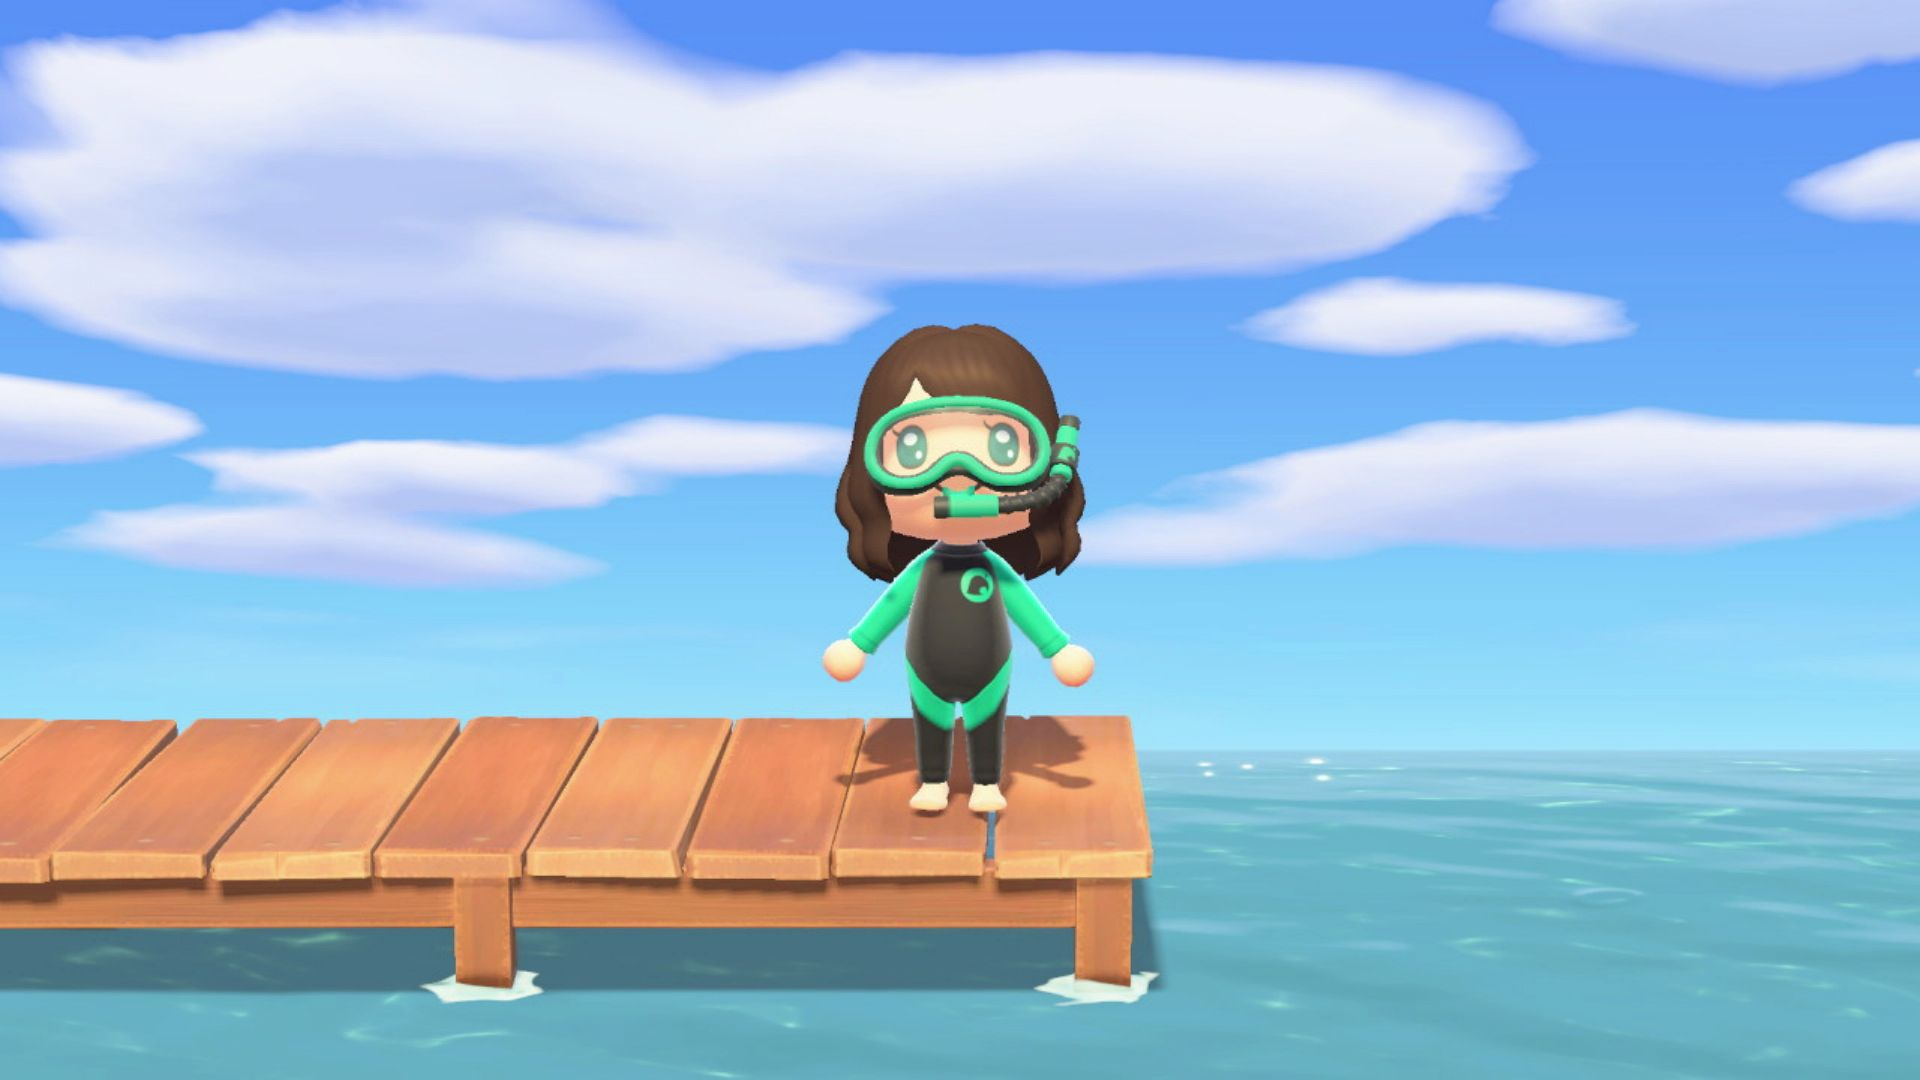 Animal Crossing New Horizons How To Get The Nook Inc Snorkel And Wet Suit Animal Crossing Animals Snorkeling